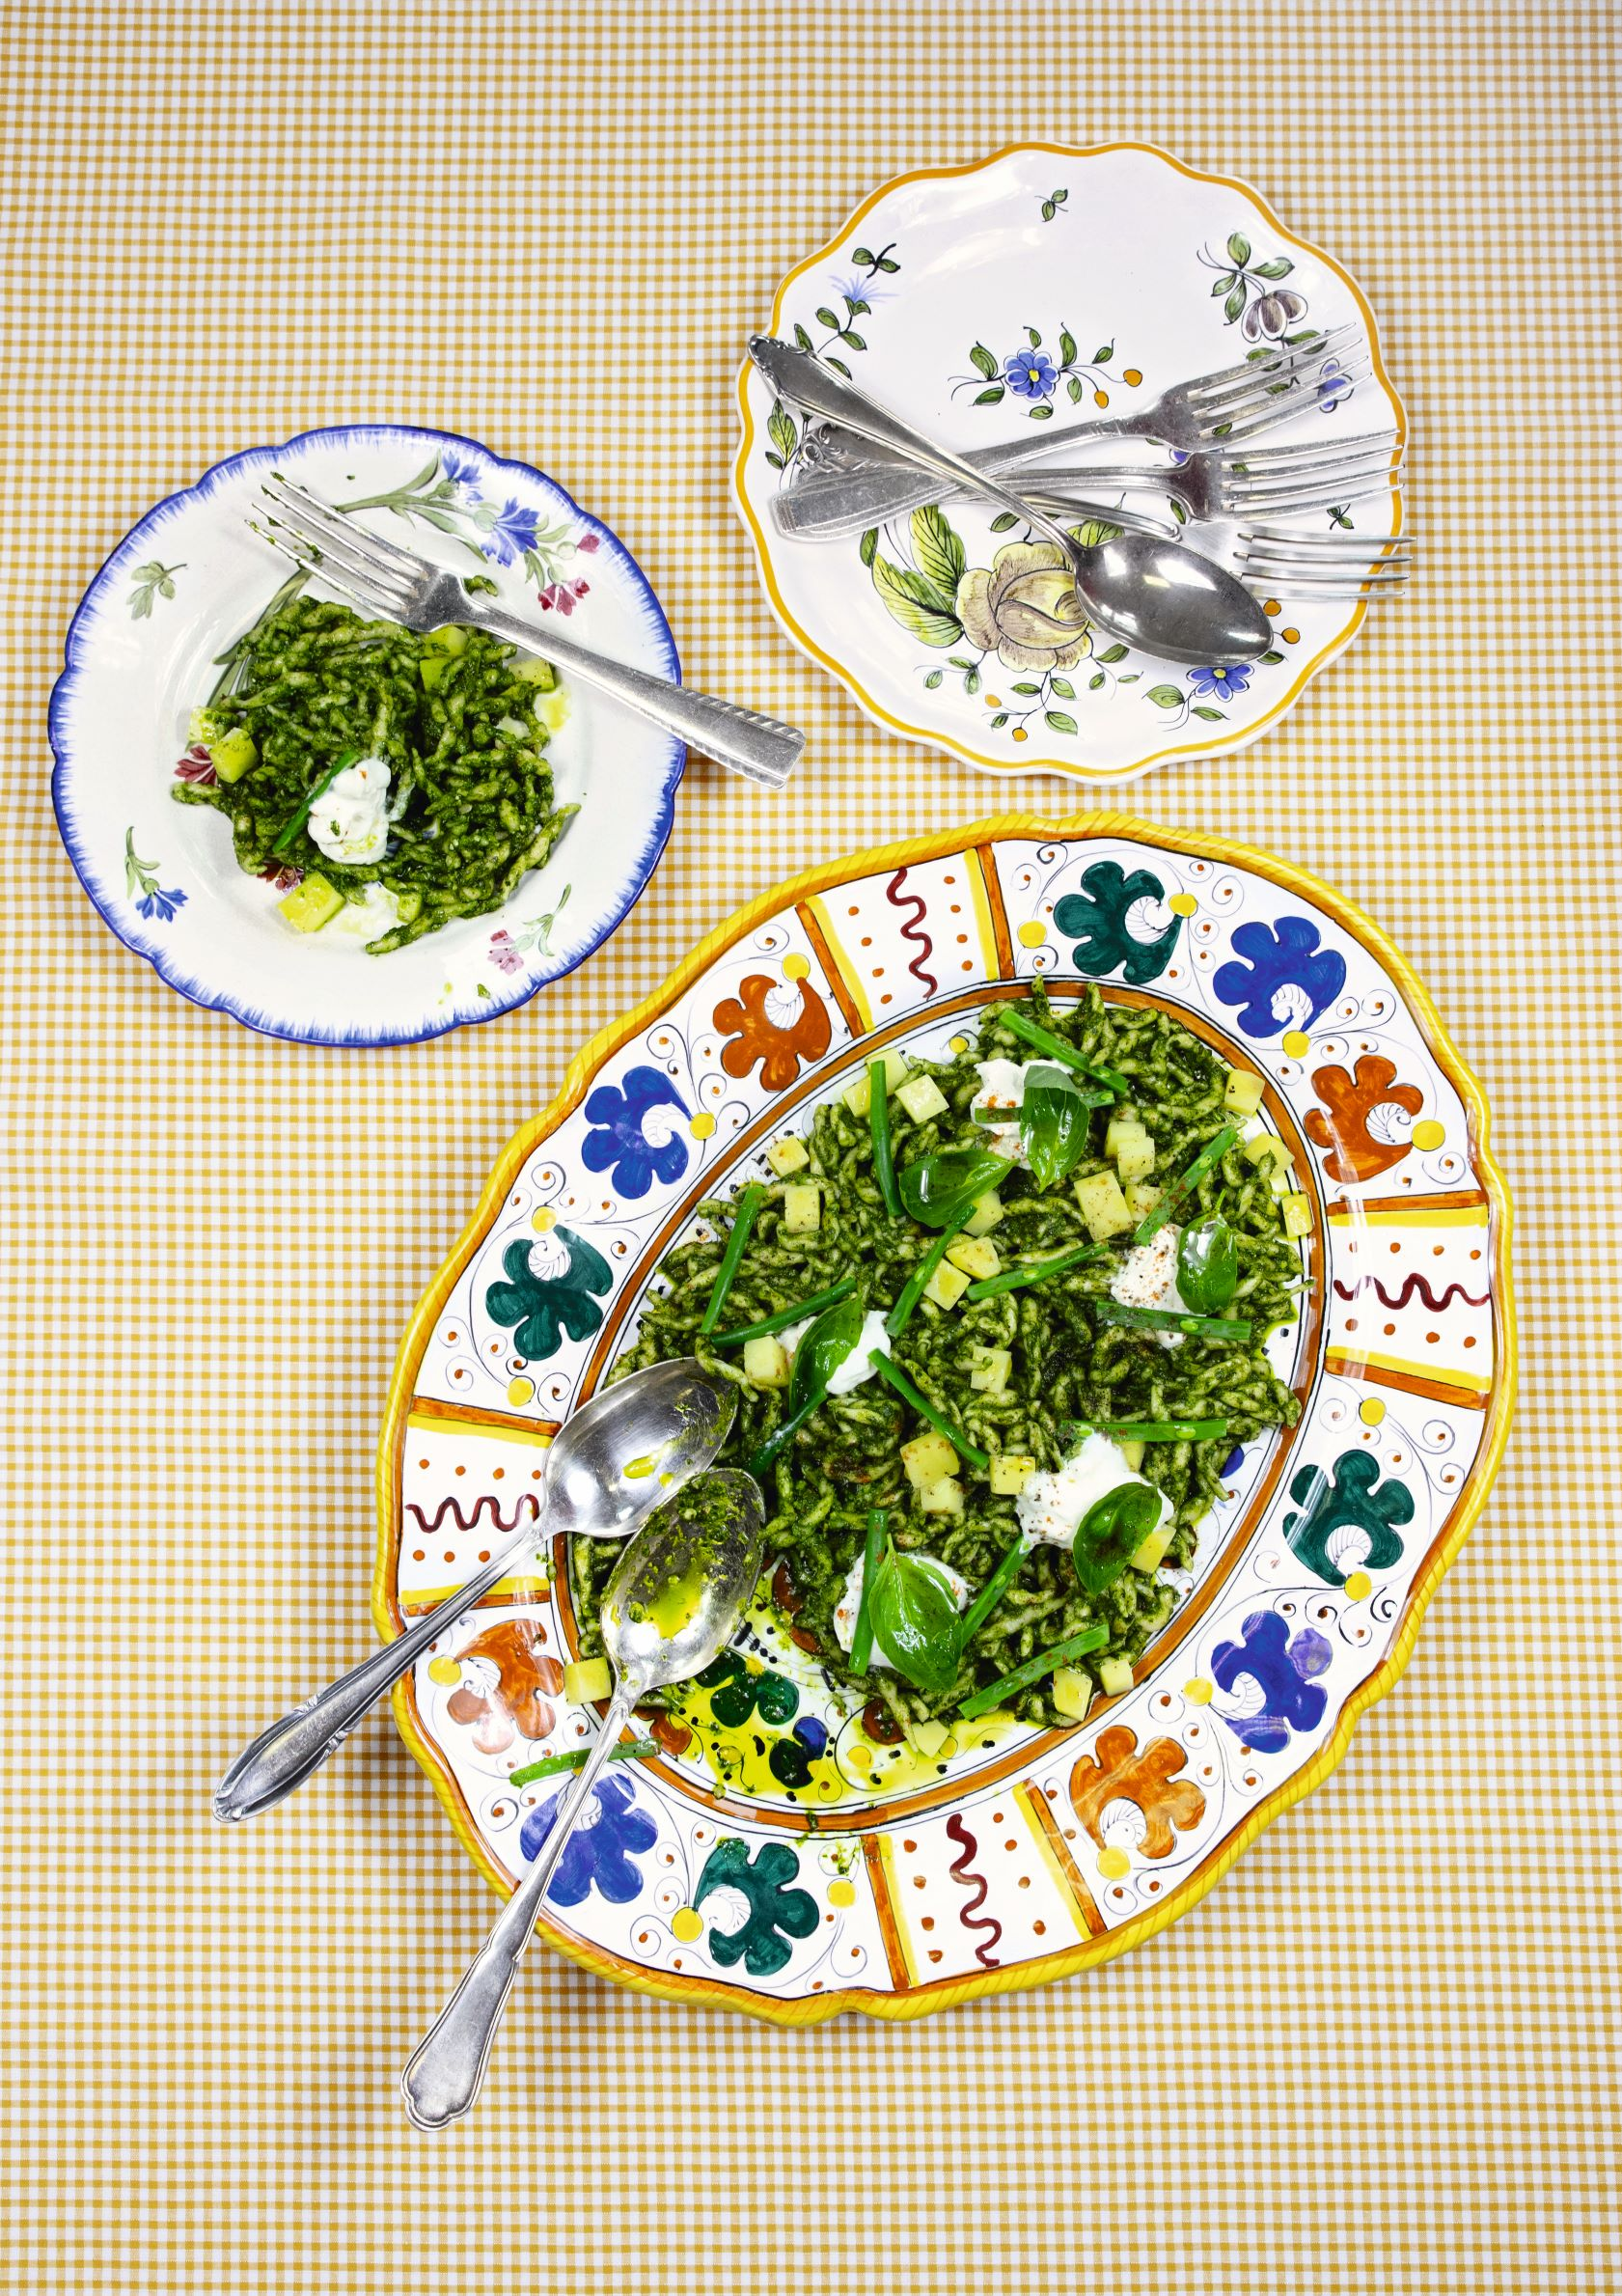 Pestogether. Trofie pasta with potatoes, green beans, green pesto and burrata. From Big Mamma Cucina Popolare